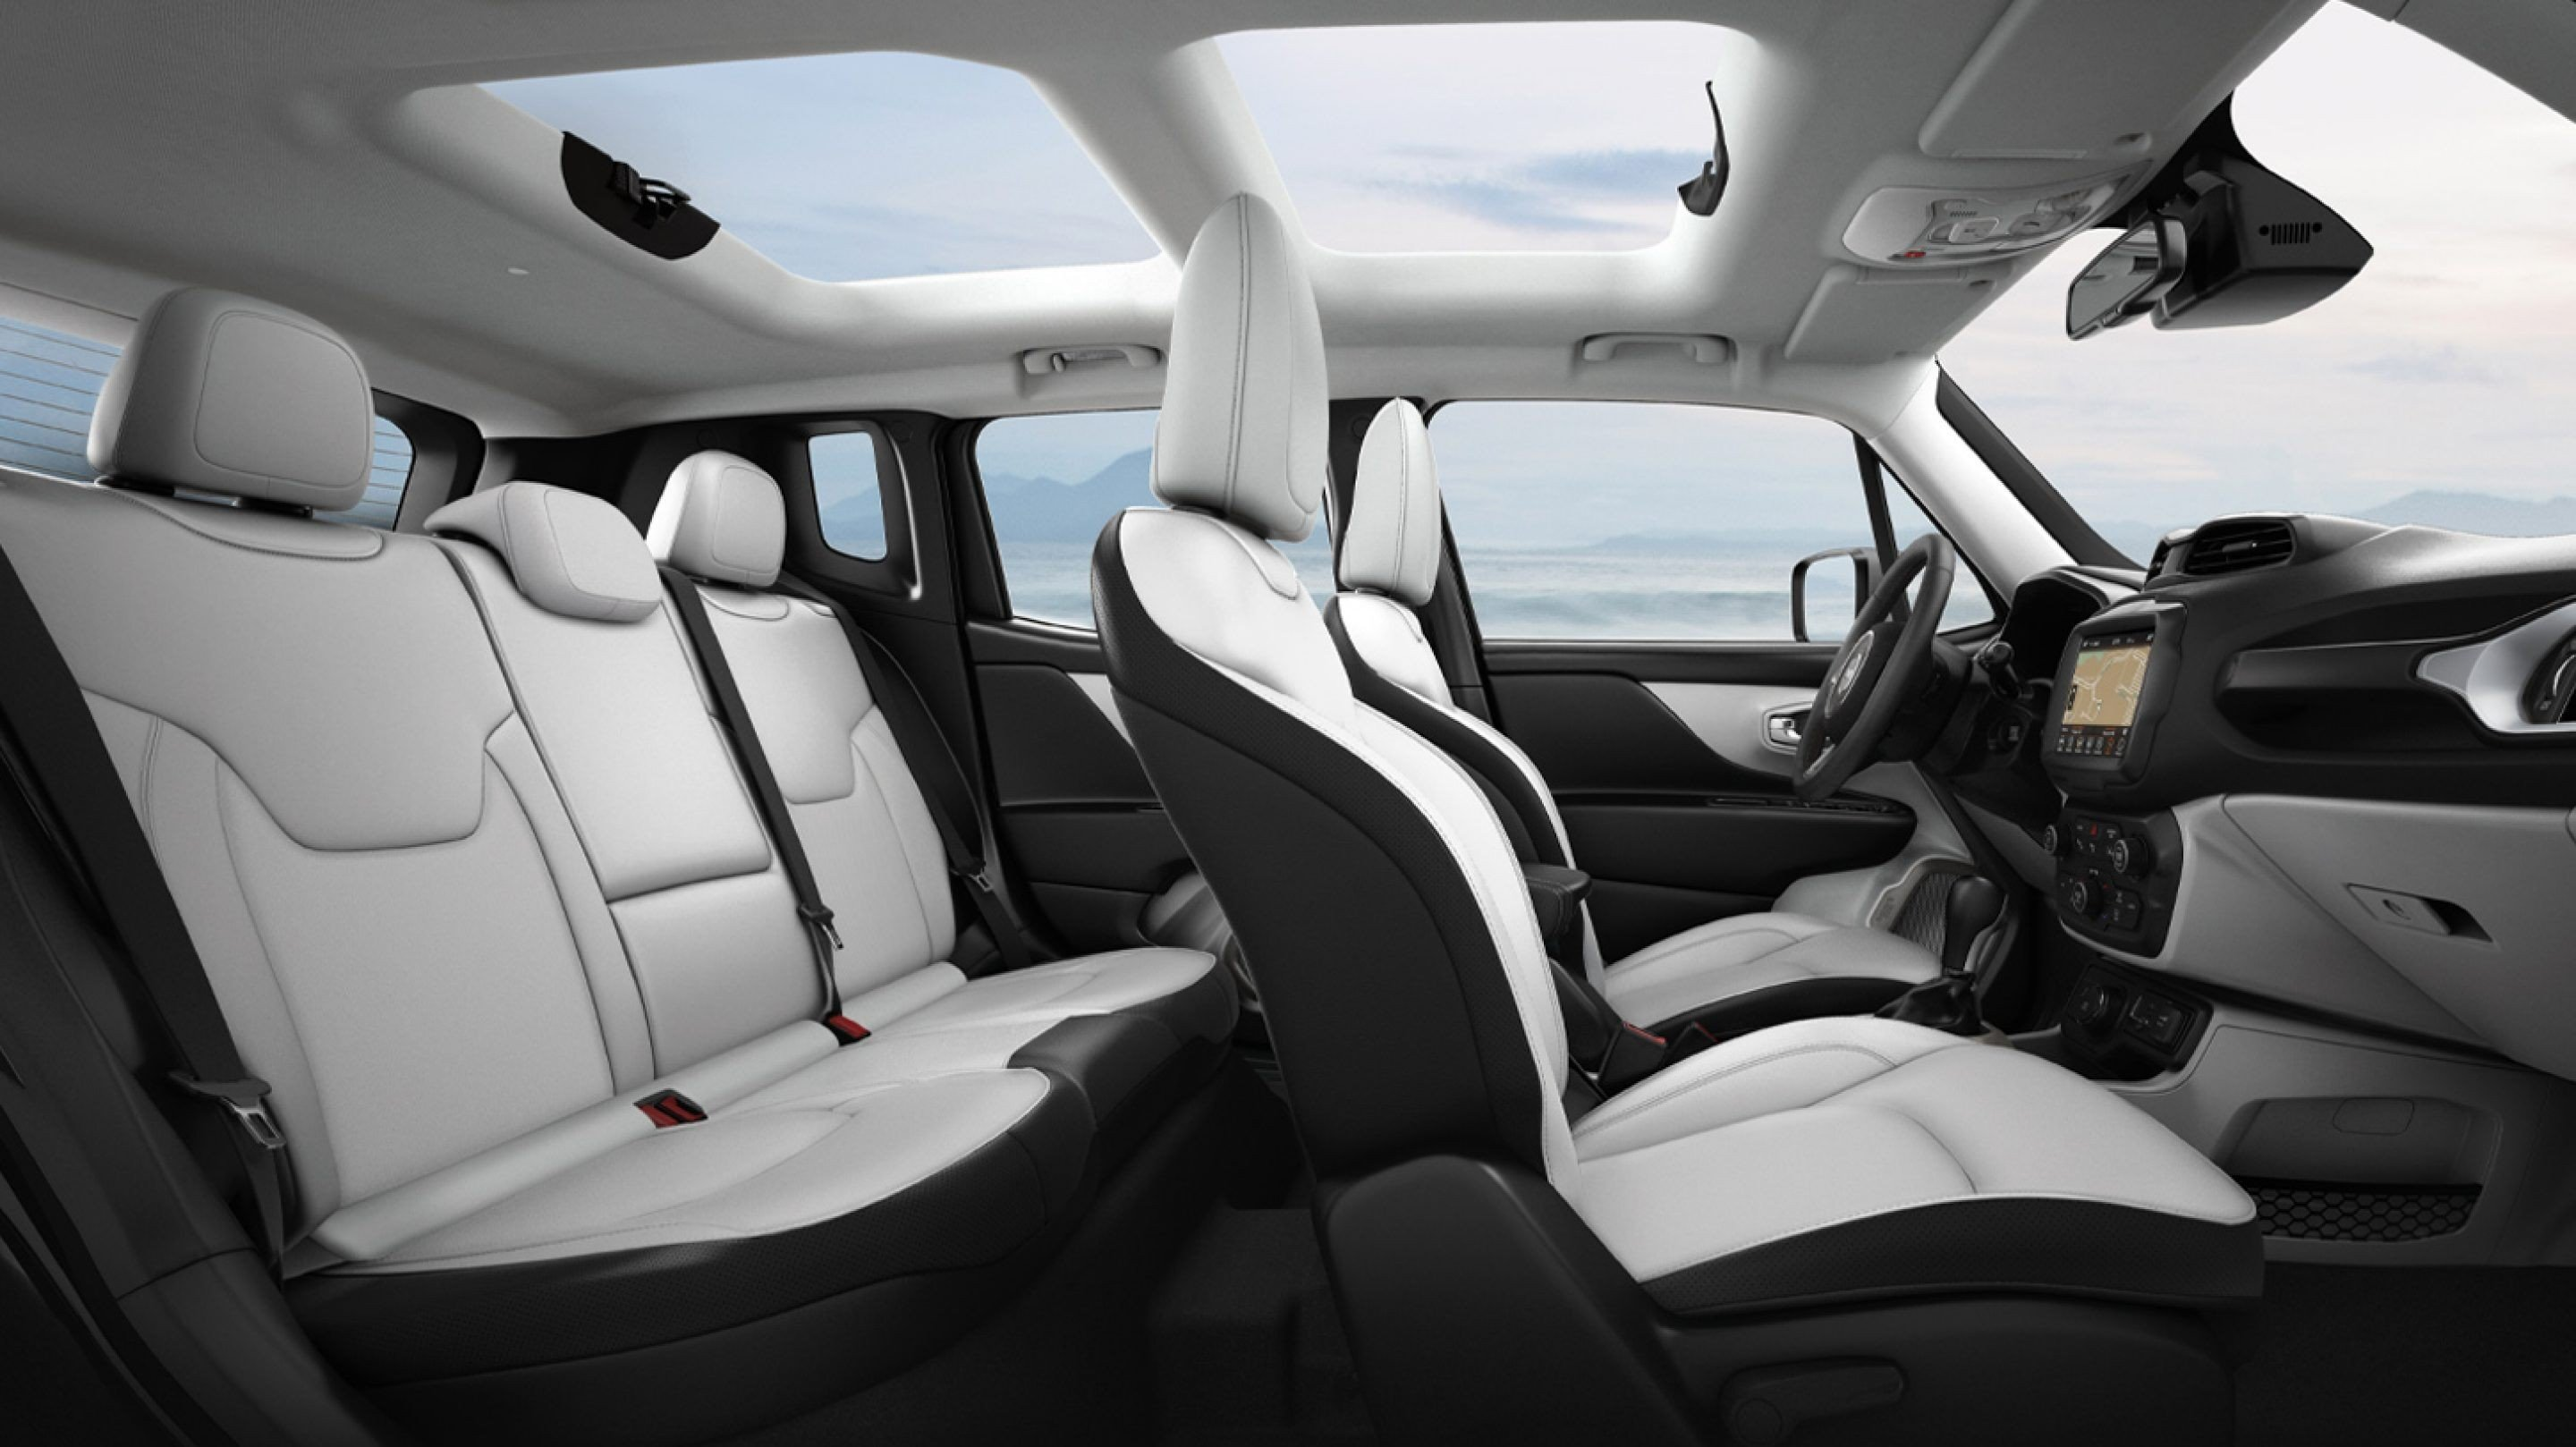 The beautiful interior of the rugged Renegade.